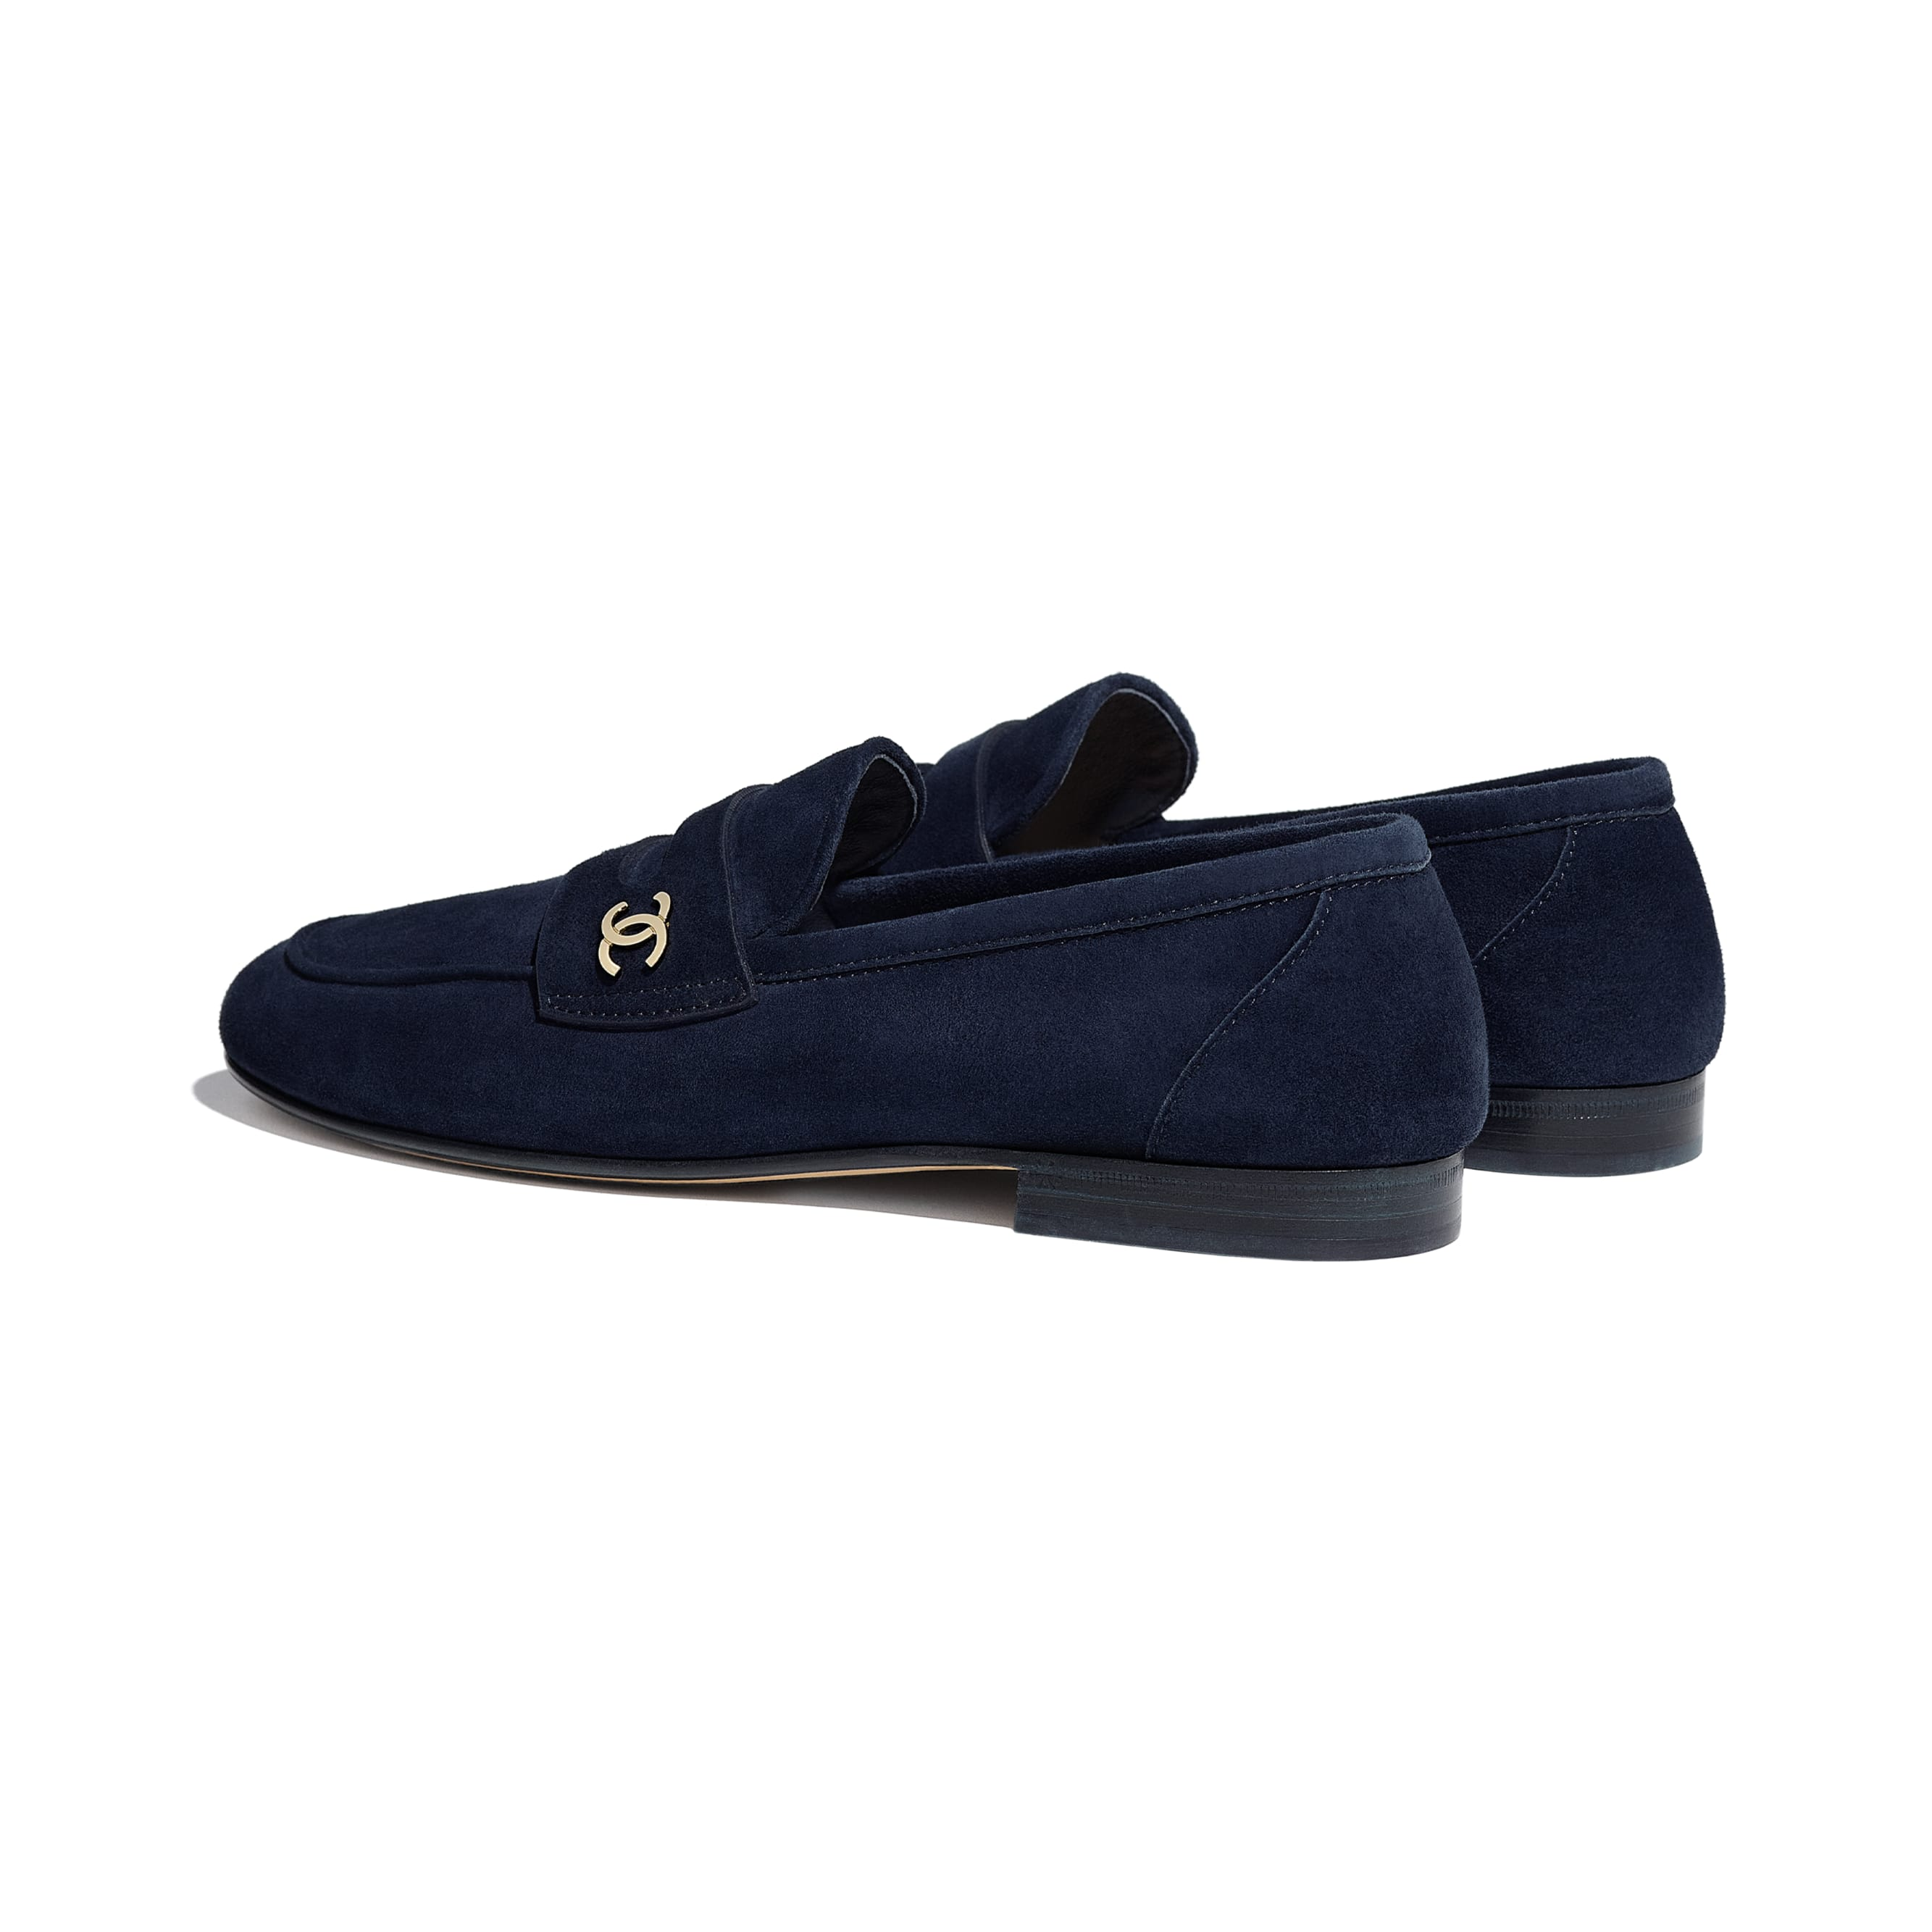 Loafers - Navy Blue - Suede Calfskin - CHANEL - Other view - see standard sized version